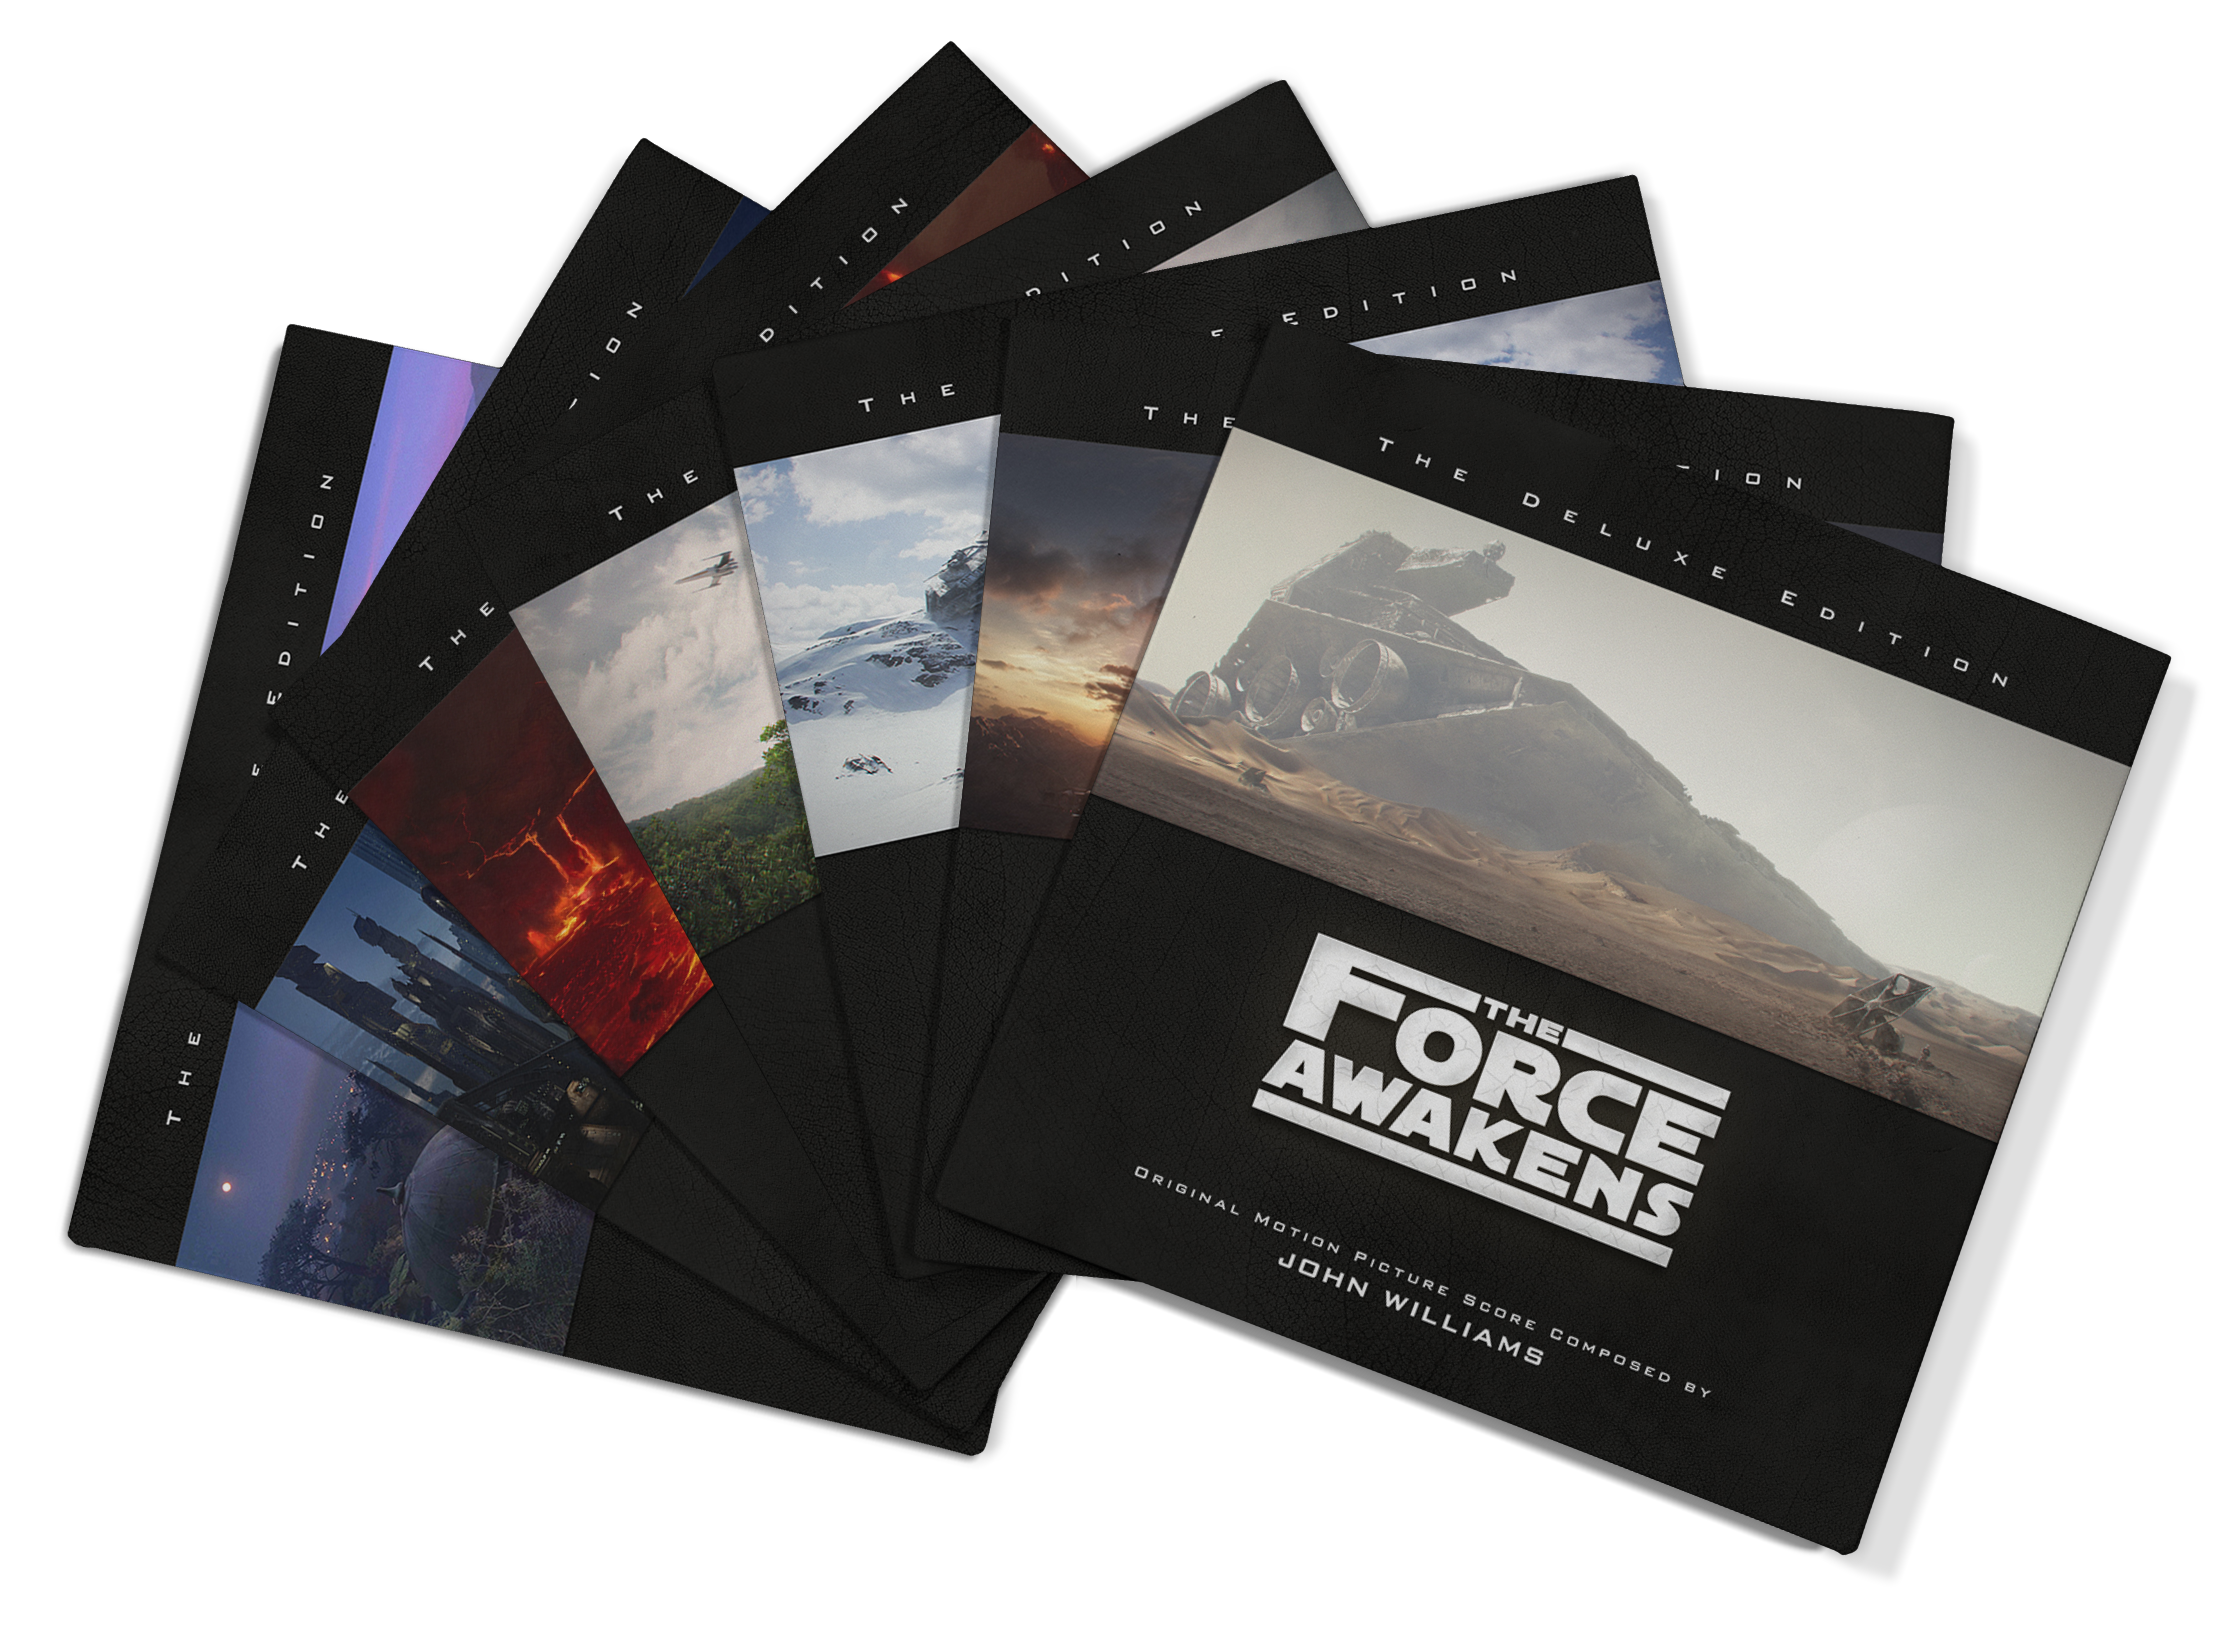 Star Wars - The Deluxe Editions